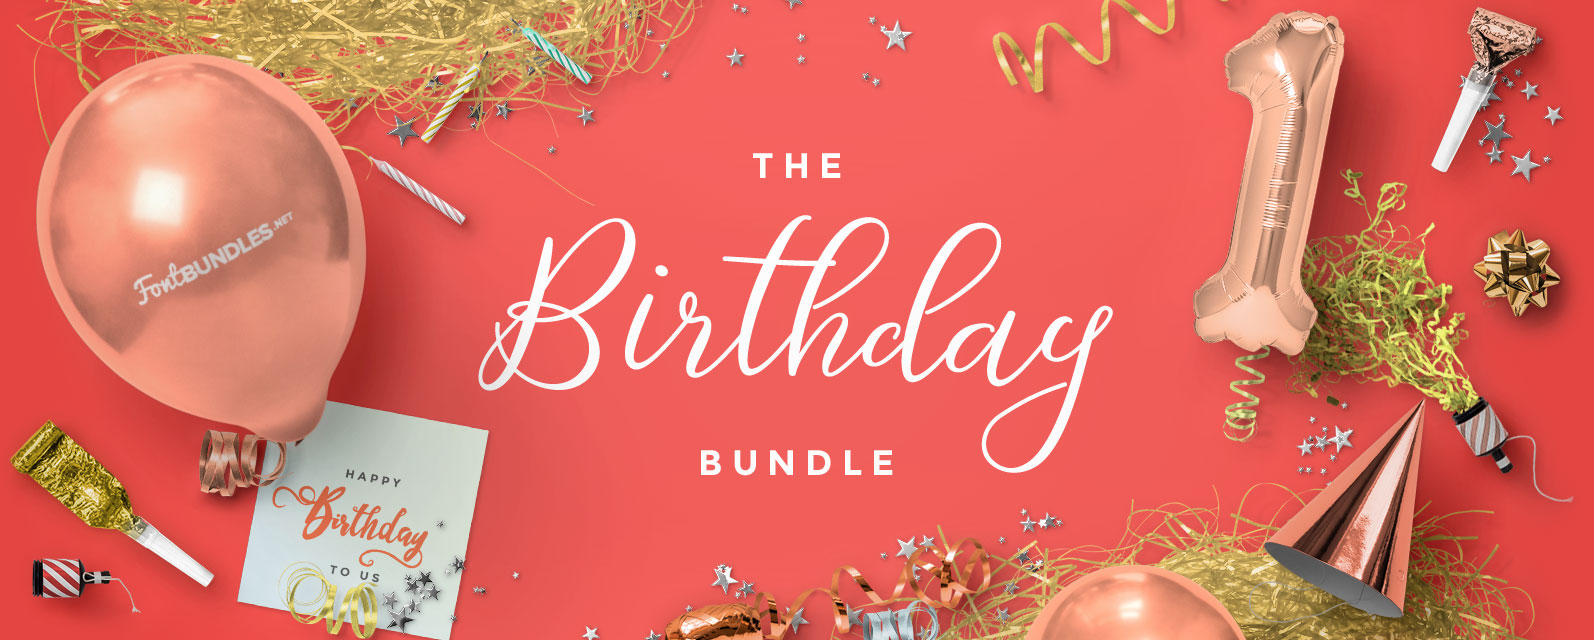 The Birthday Bundle Cover